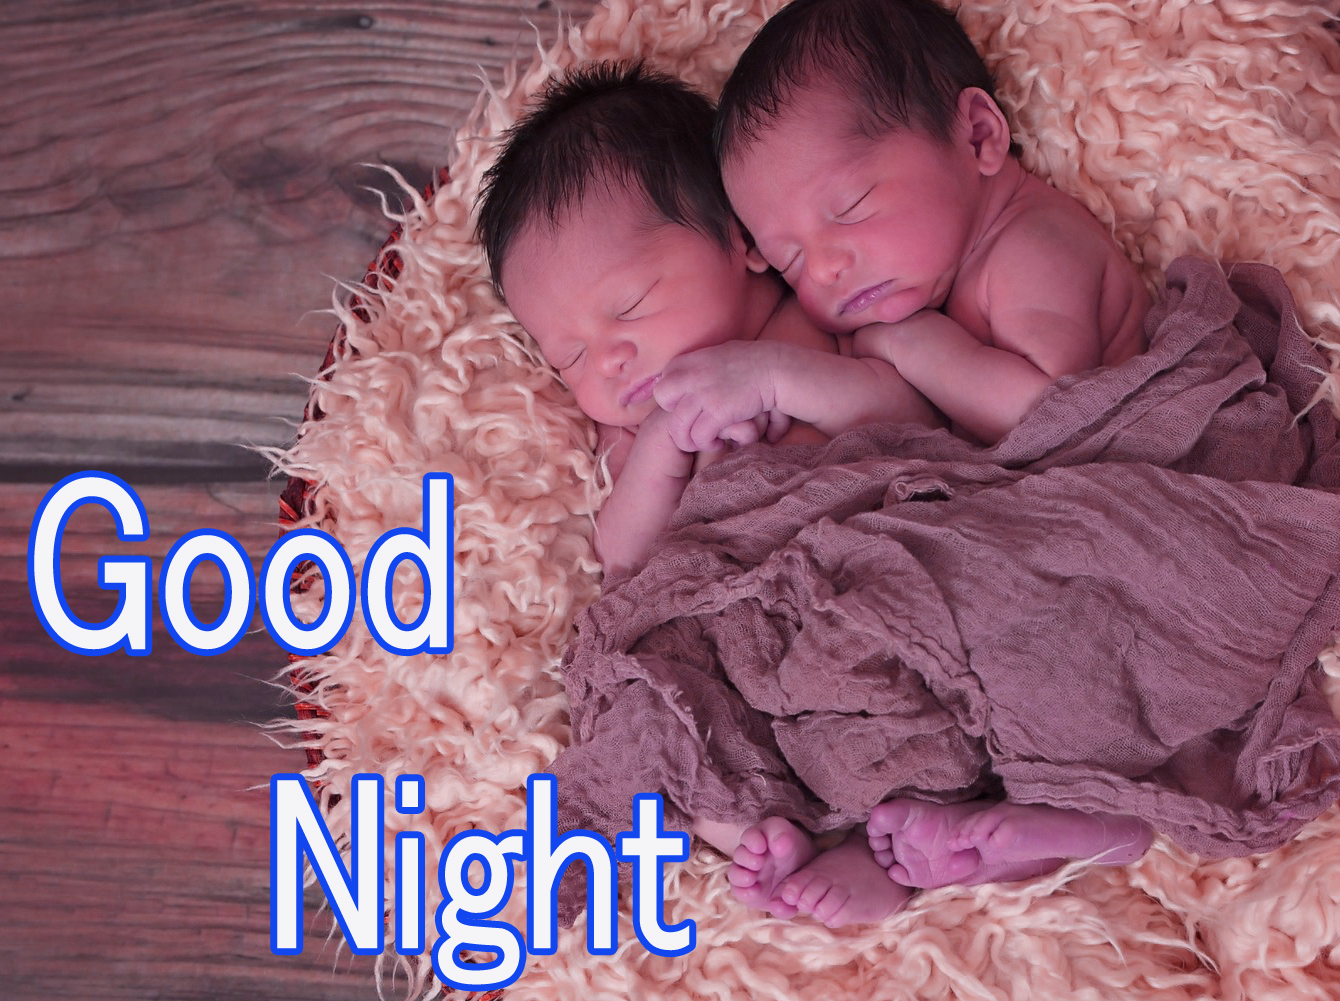 GOOD NIGHT IMAGES WITH CUTE BABY BOYS & GIRLS WALLPAPER PICS FREE DOWNLOAD